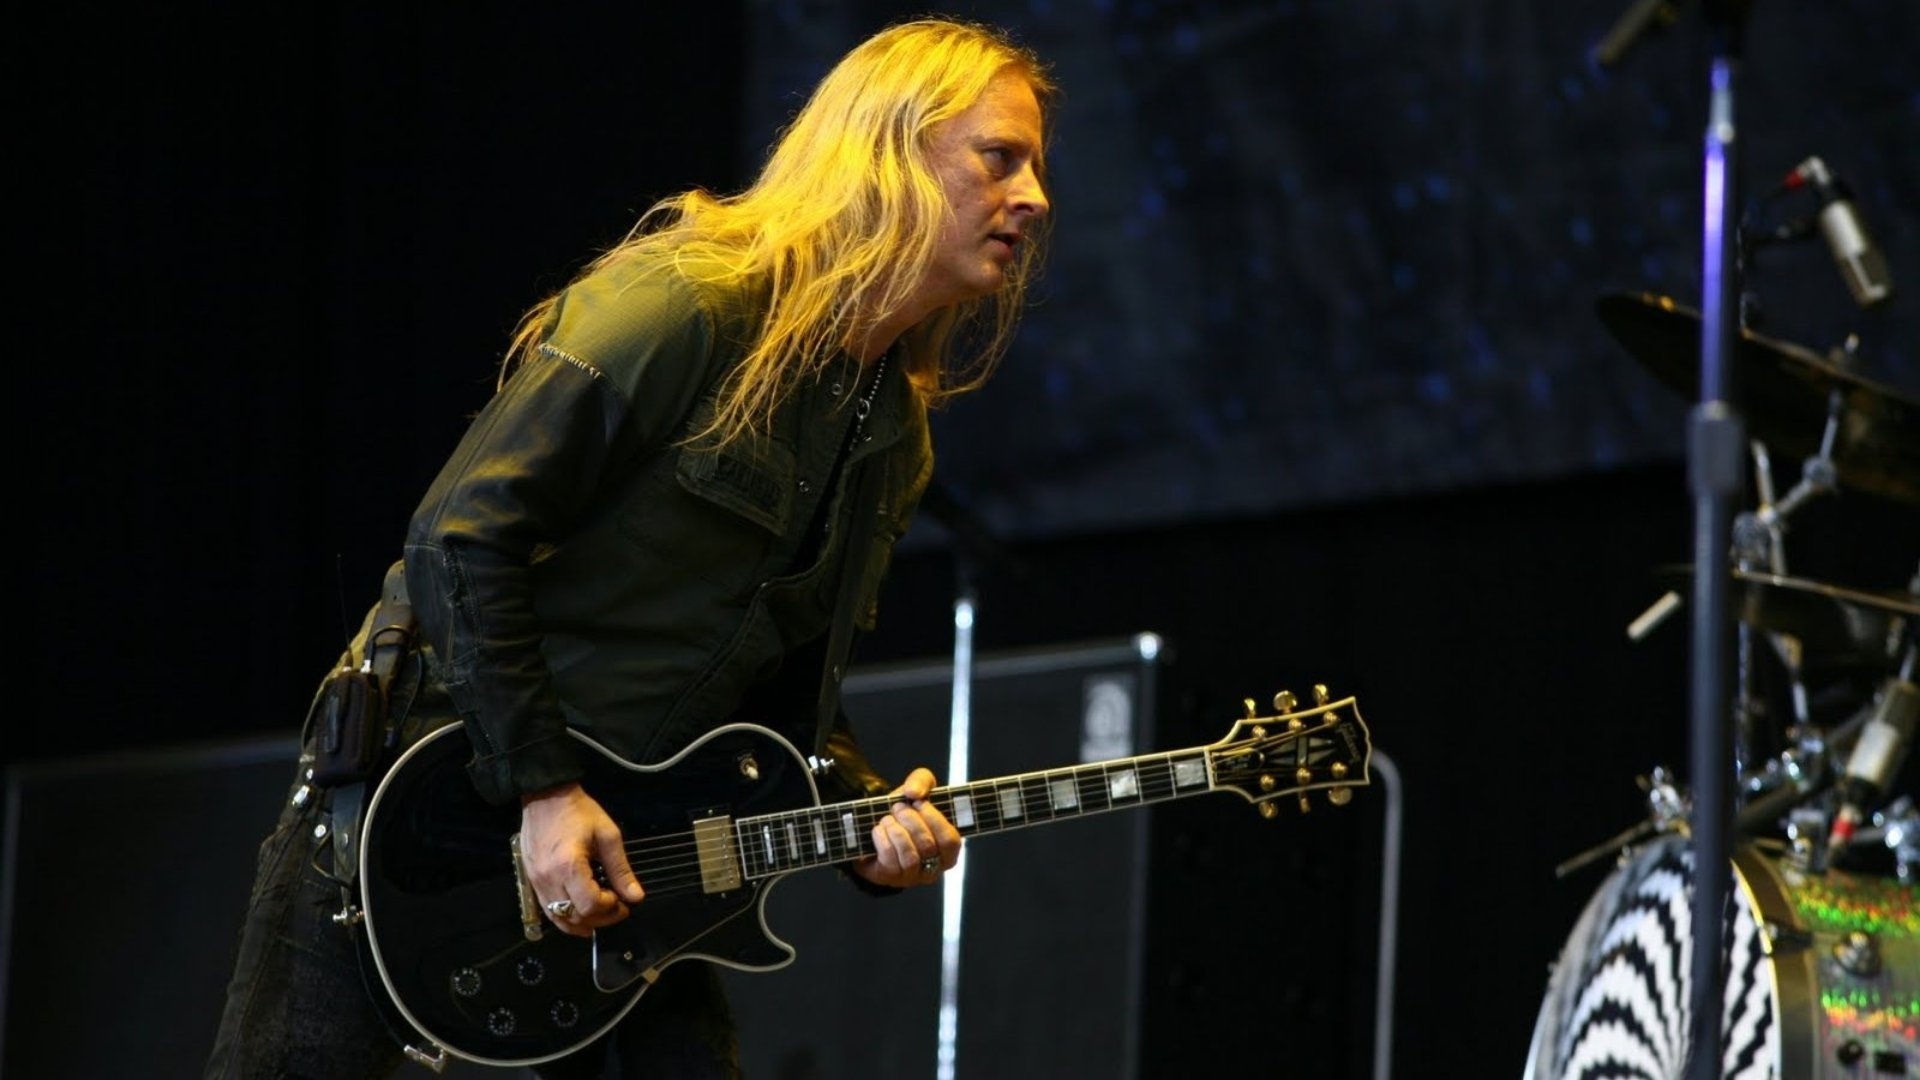 480x484 jerry cantrell hair guitar Android One Wallpaper HD 1920x1080